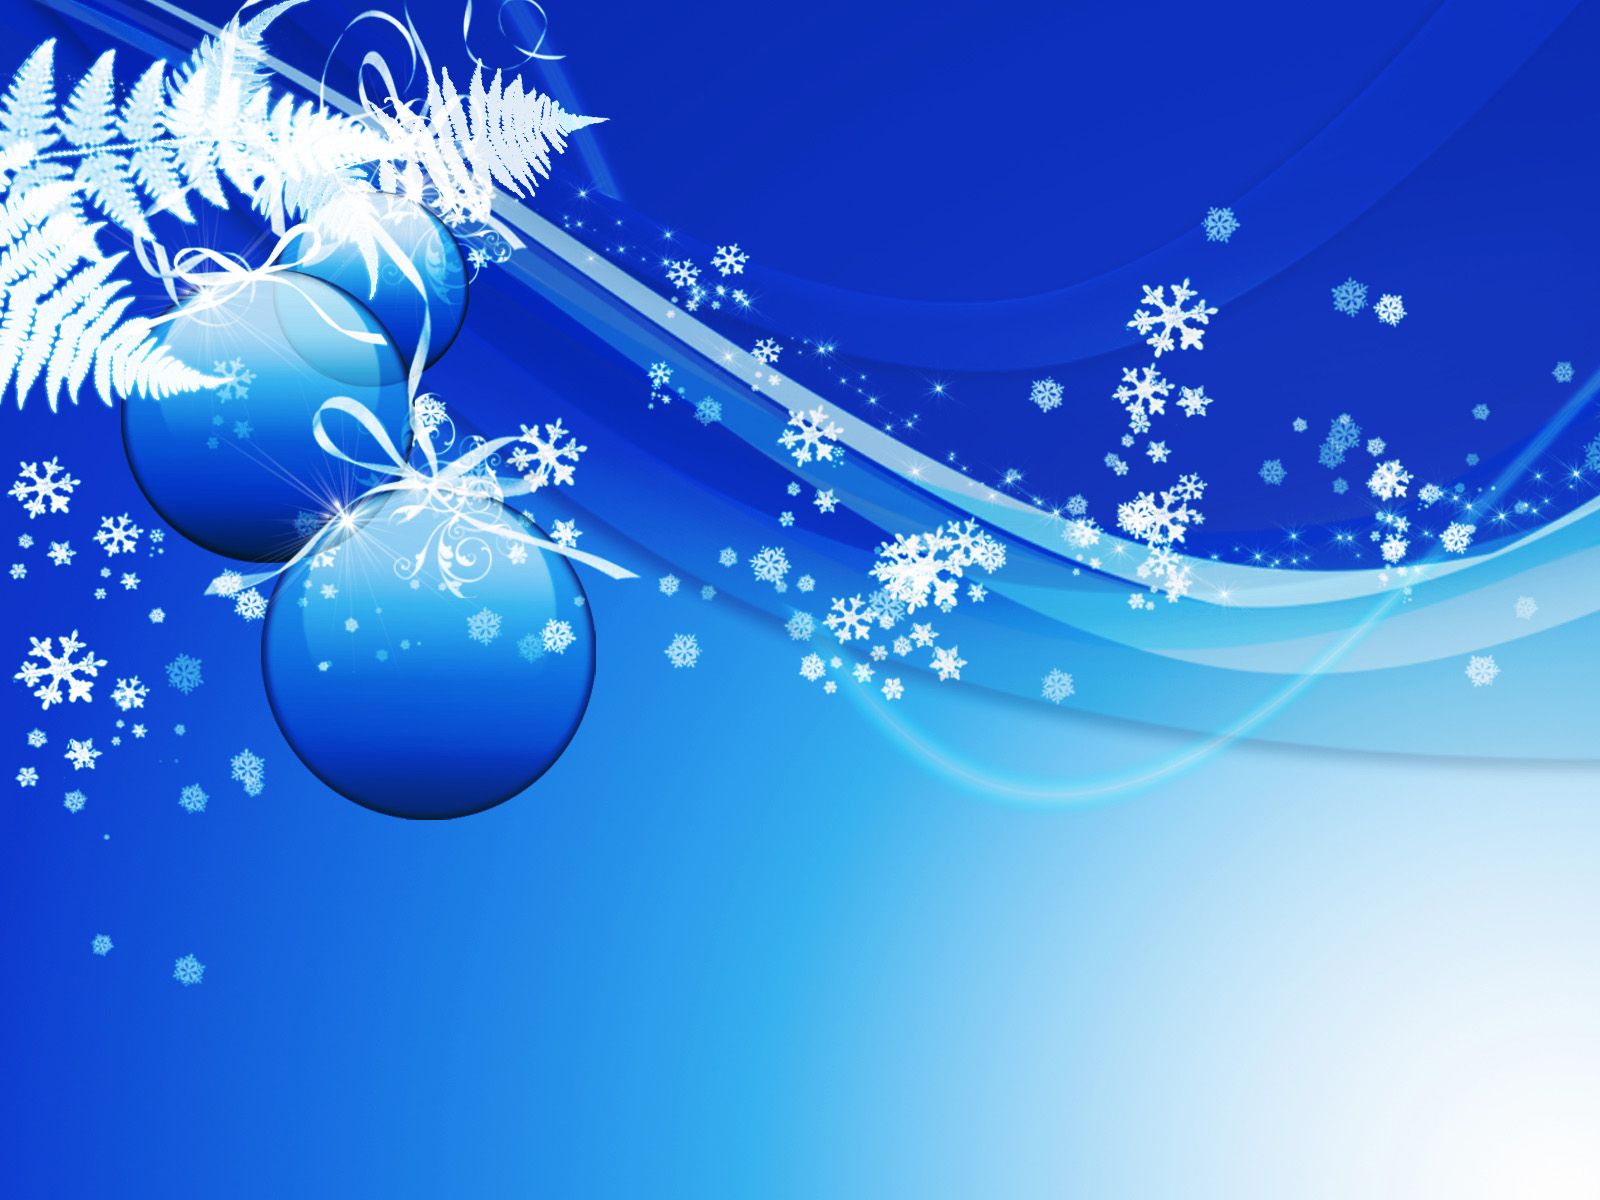 Winter christmas holiday wallpapers